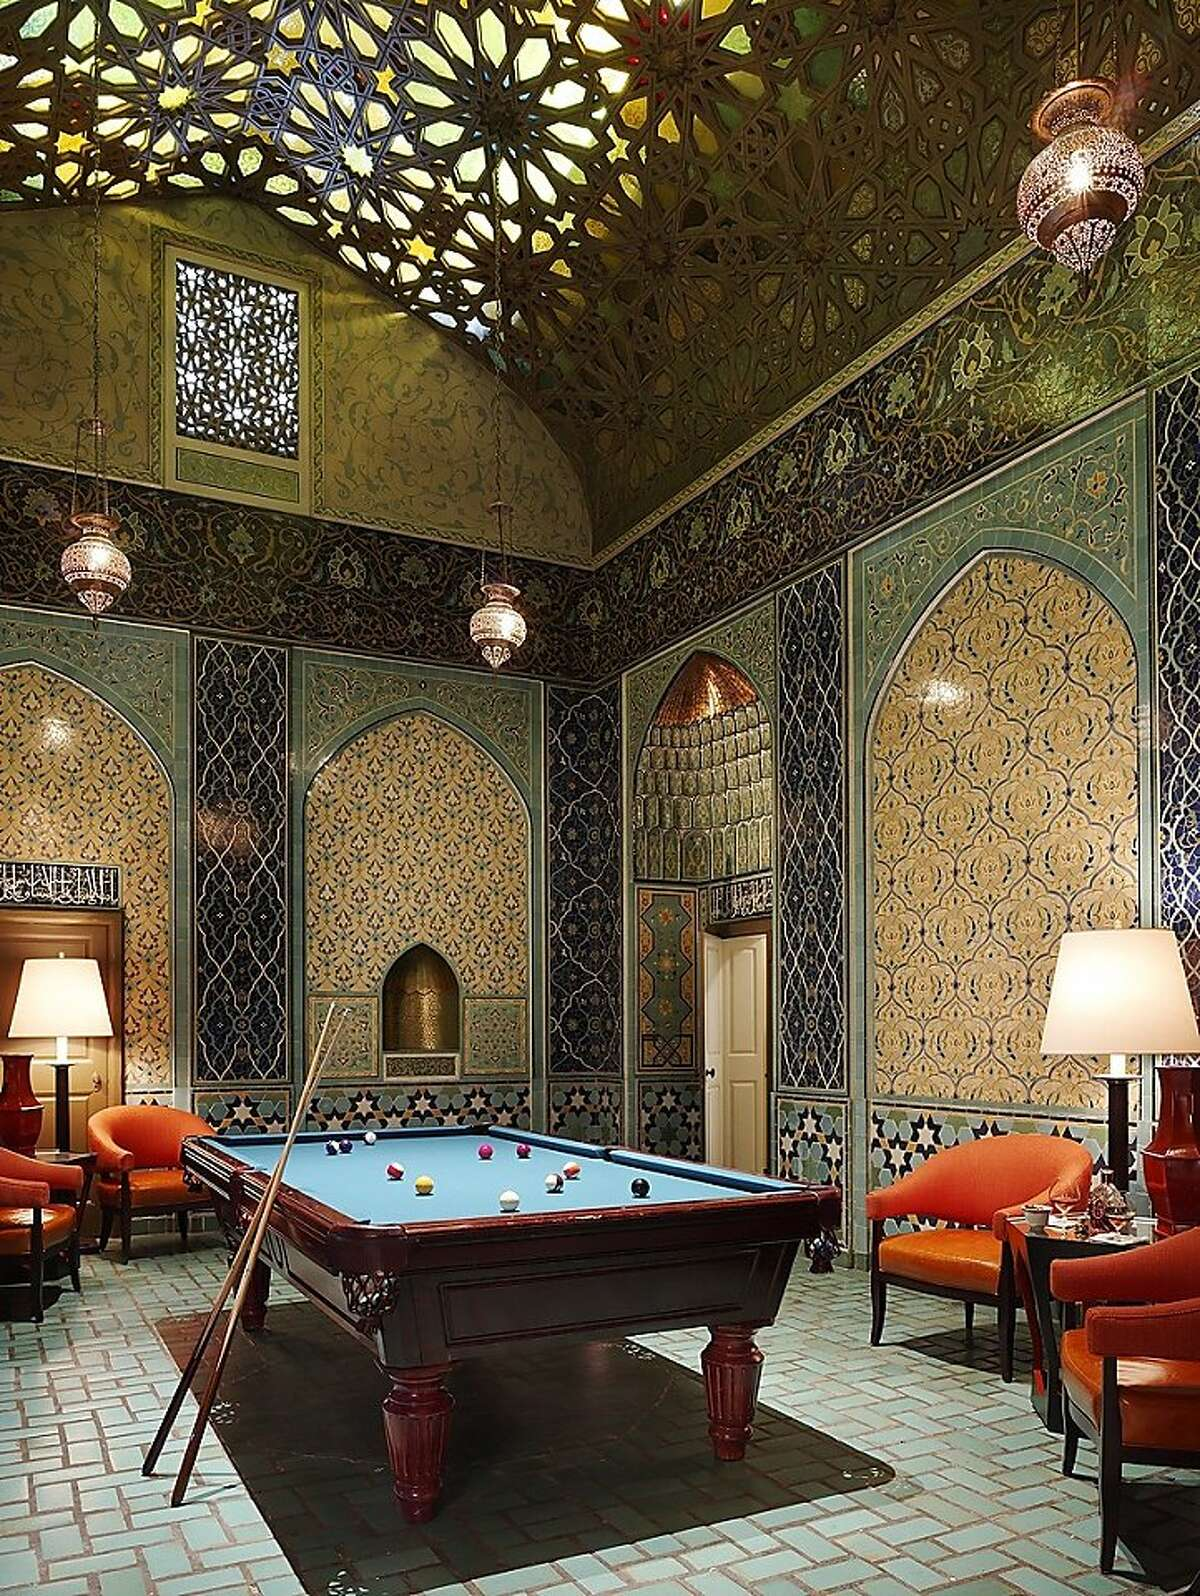 The billiards room in the Fairmont Hotel penthouse.